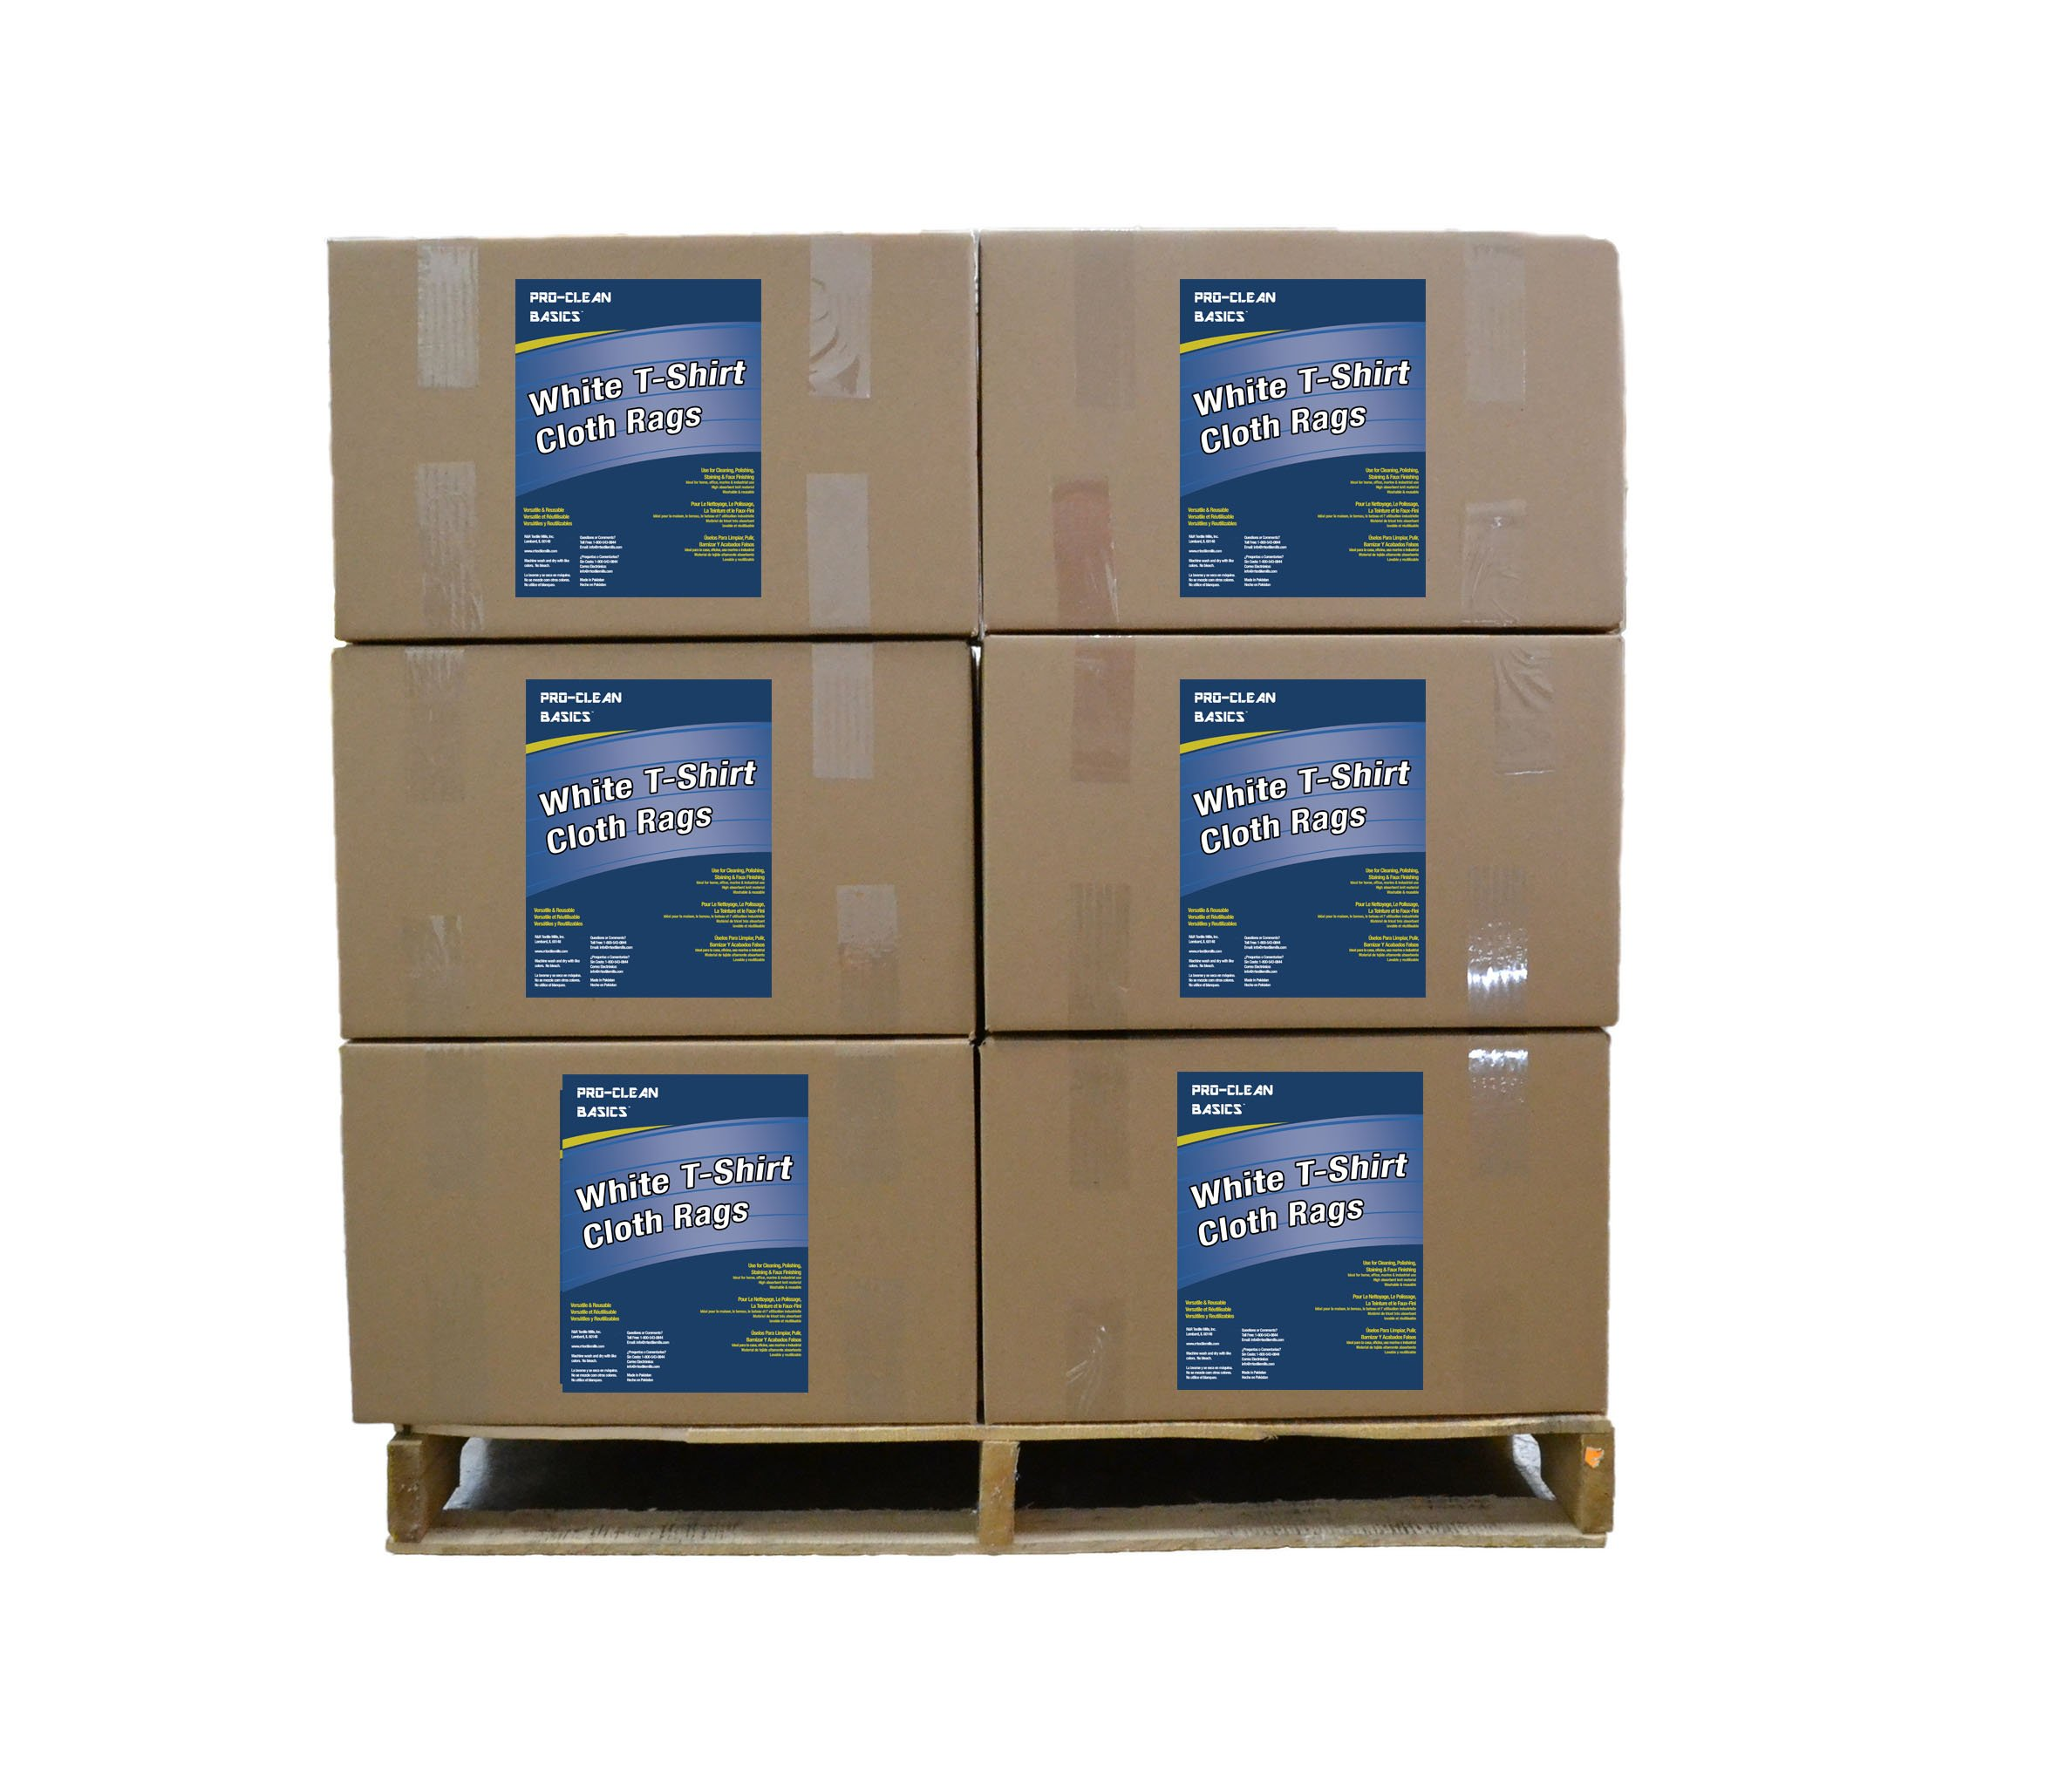 Pro-Clean Basics A95011 White T-shirt Rags Pallet, 630lbs per pallet or 42 x 15lbs Cartons